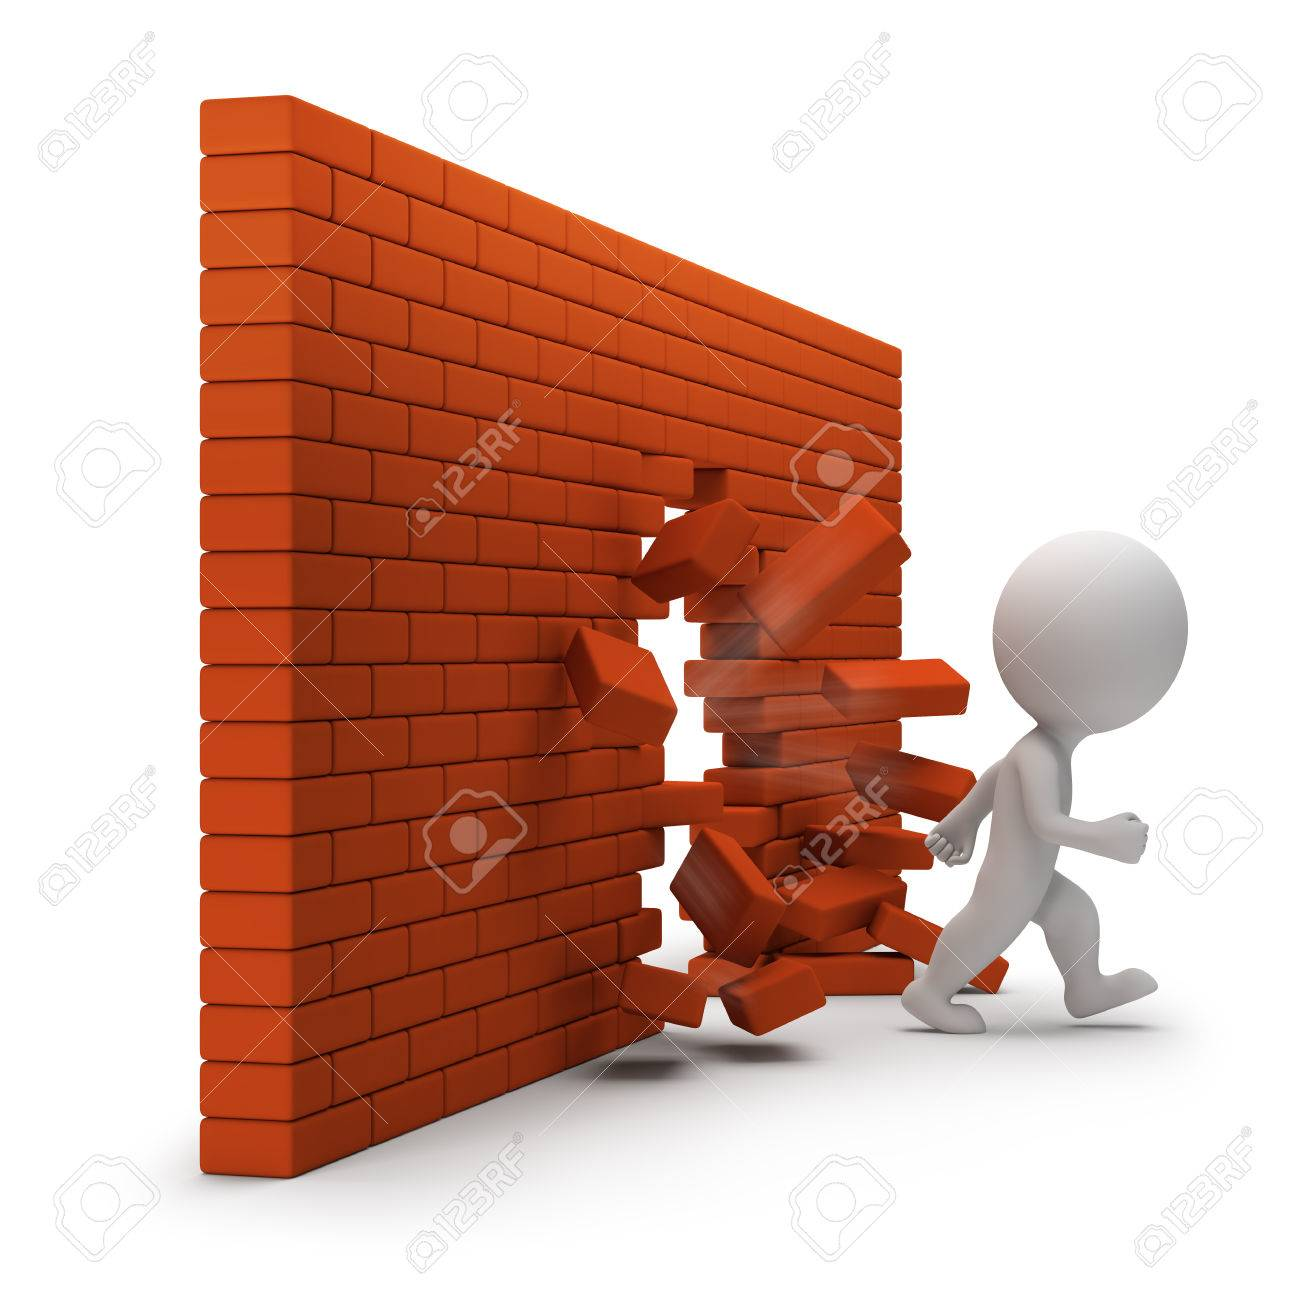 3d small person passing through a brick wall. 3d image. White background. - 32009856